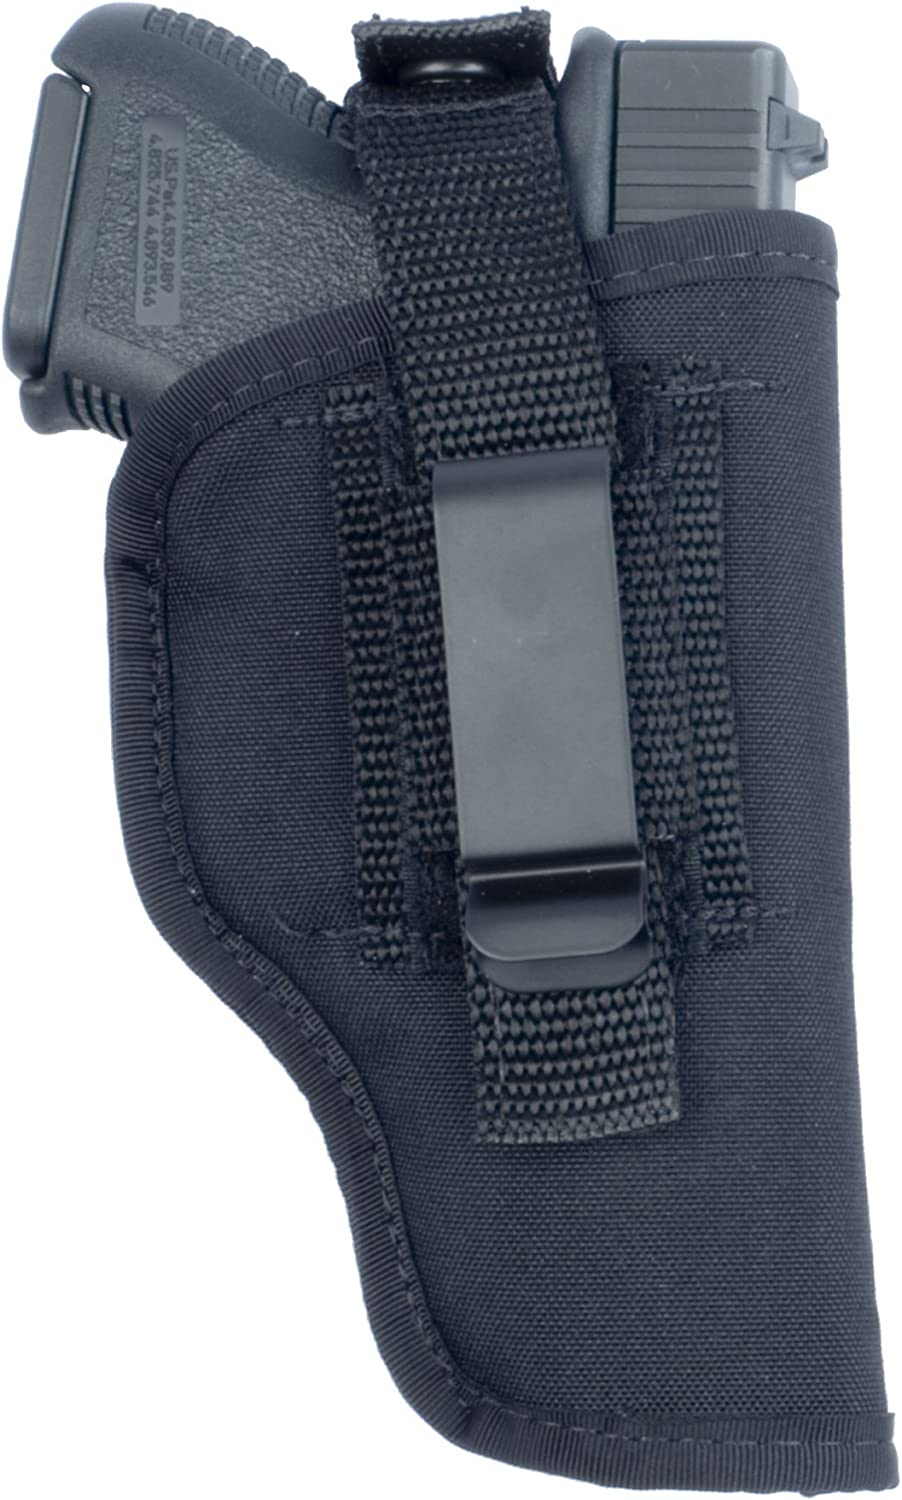 Soft Armor inThePant or Hip Ambidextrous Nylon Gun Holster with Thumb Break Retention Strap